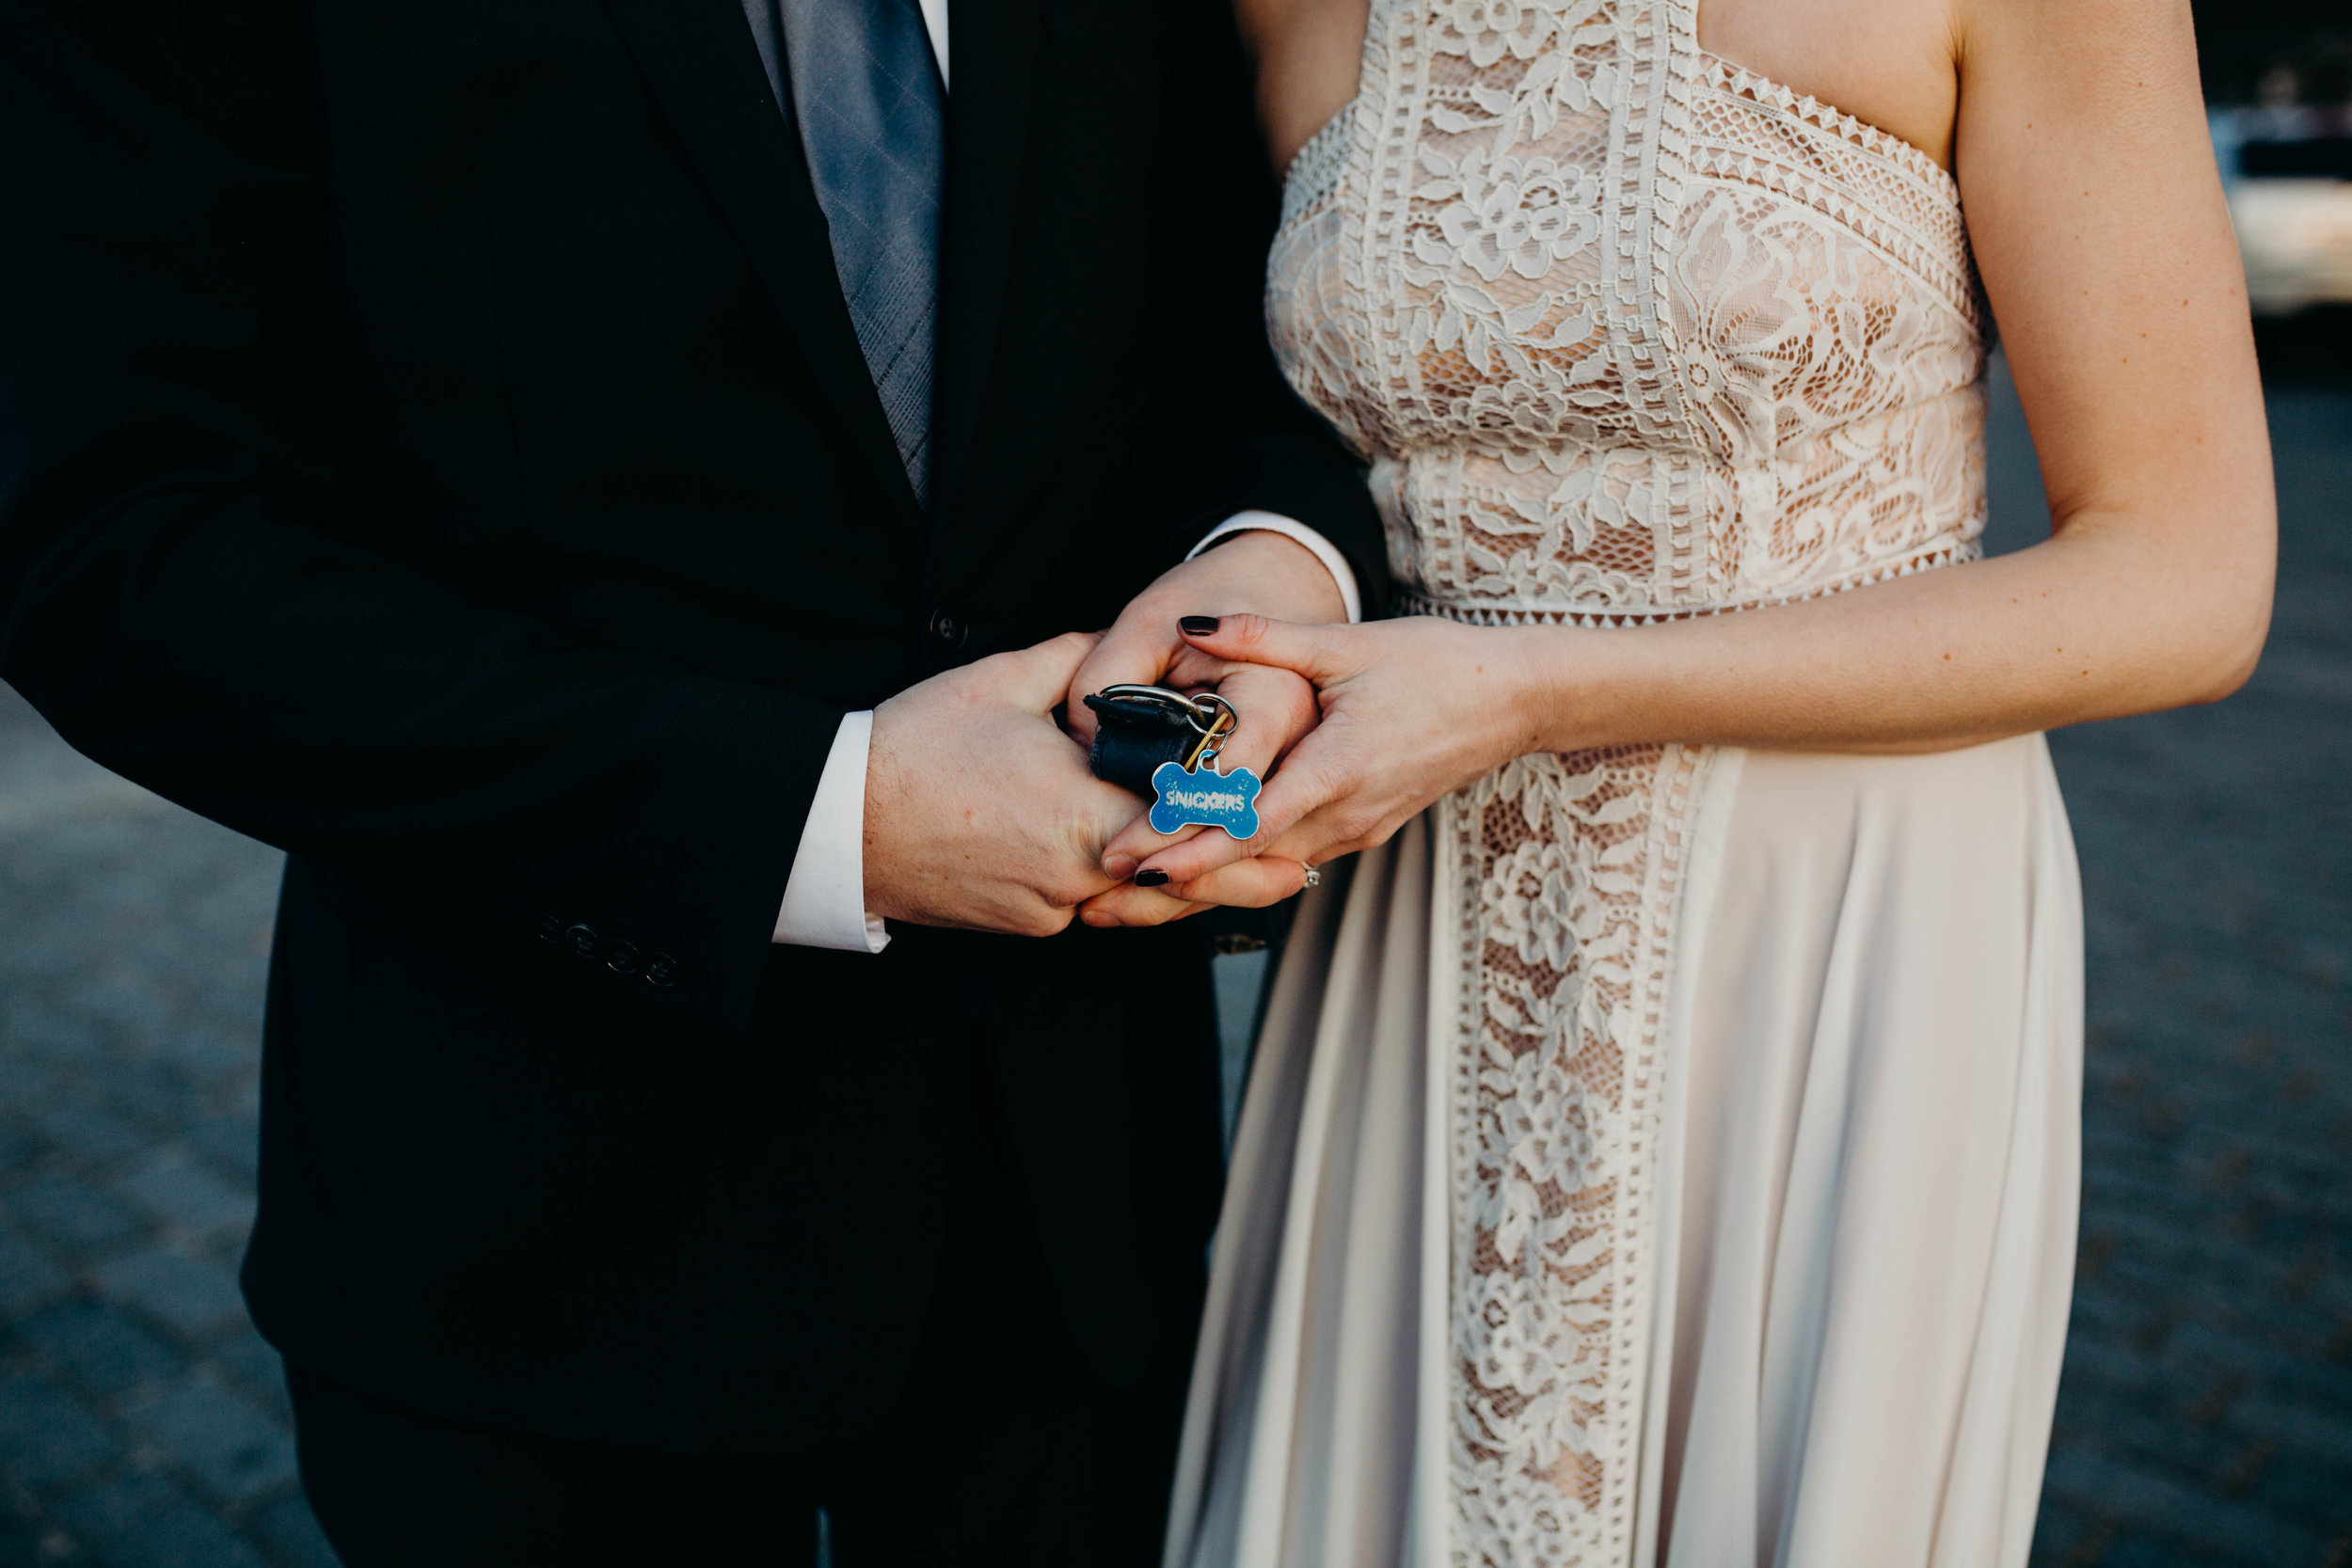 This dog tag was in honor of their sweet pup, Snickers, who was supposed to be their flower girl but unfortunately passed a few weeks before the wedding day.